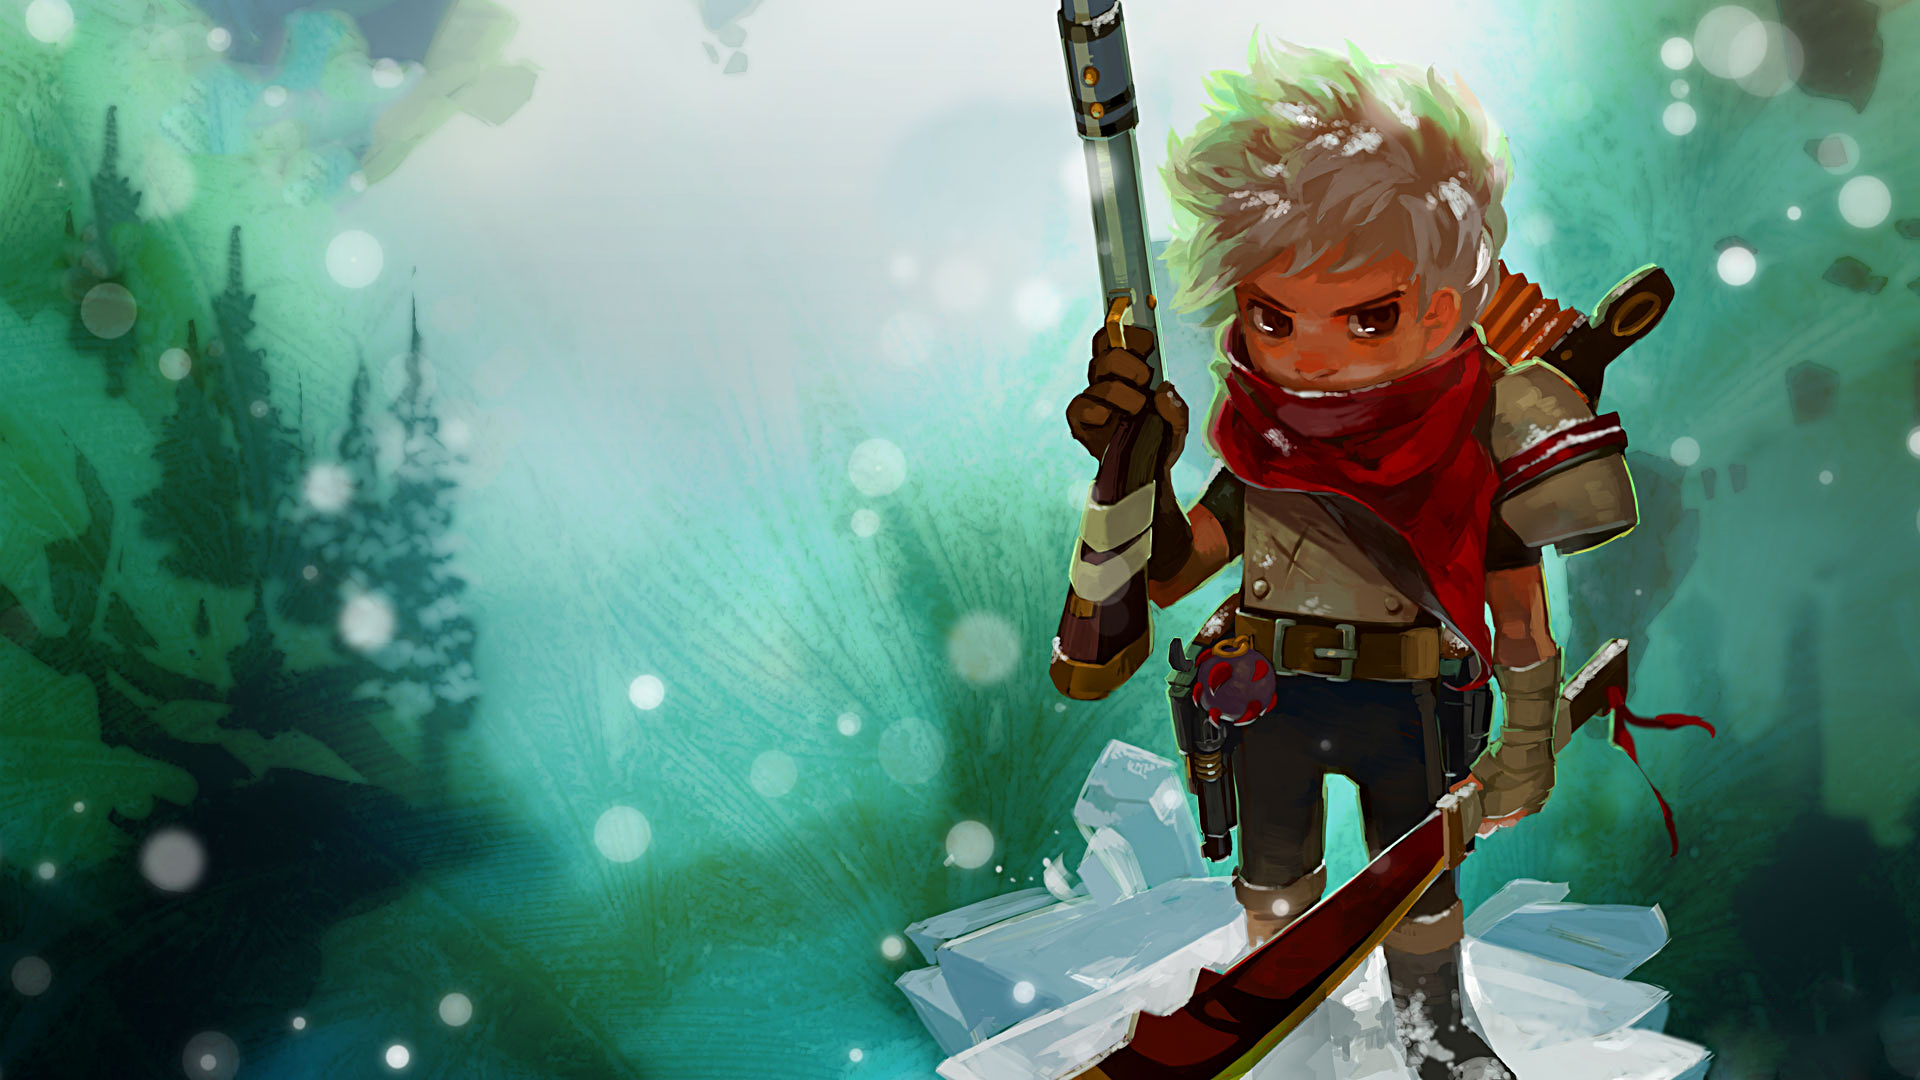 Bastion Game Games Warrior Warriors Weapon Weapons Cartoon